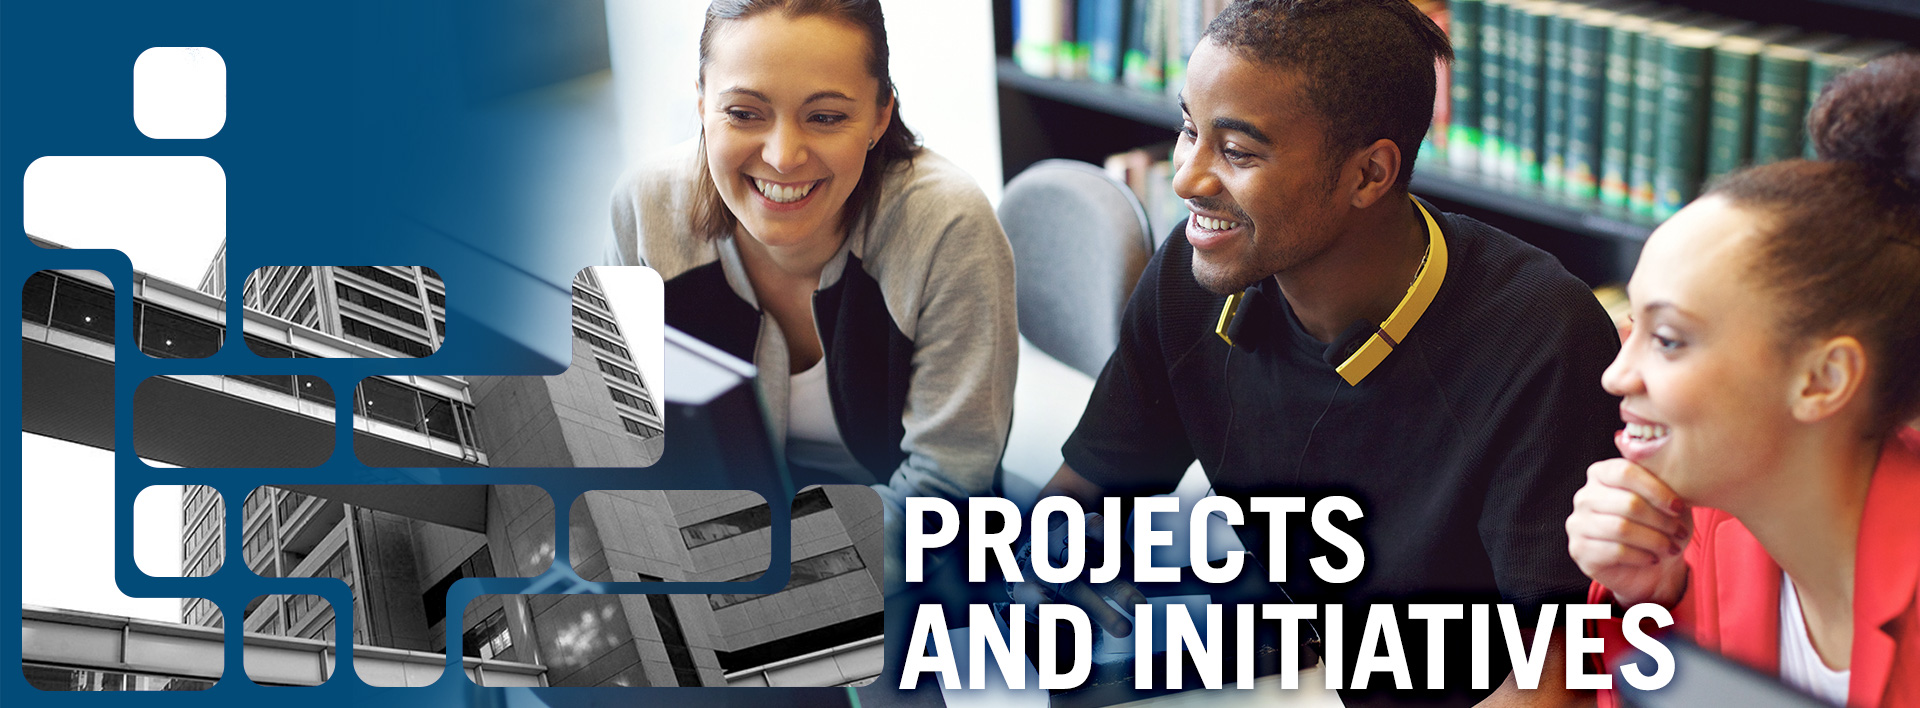 PROJECTS AND INITIATIVES header